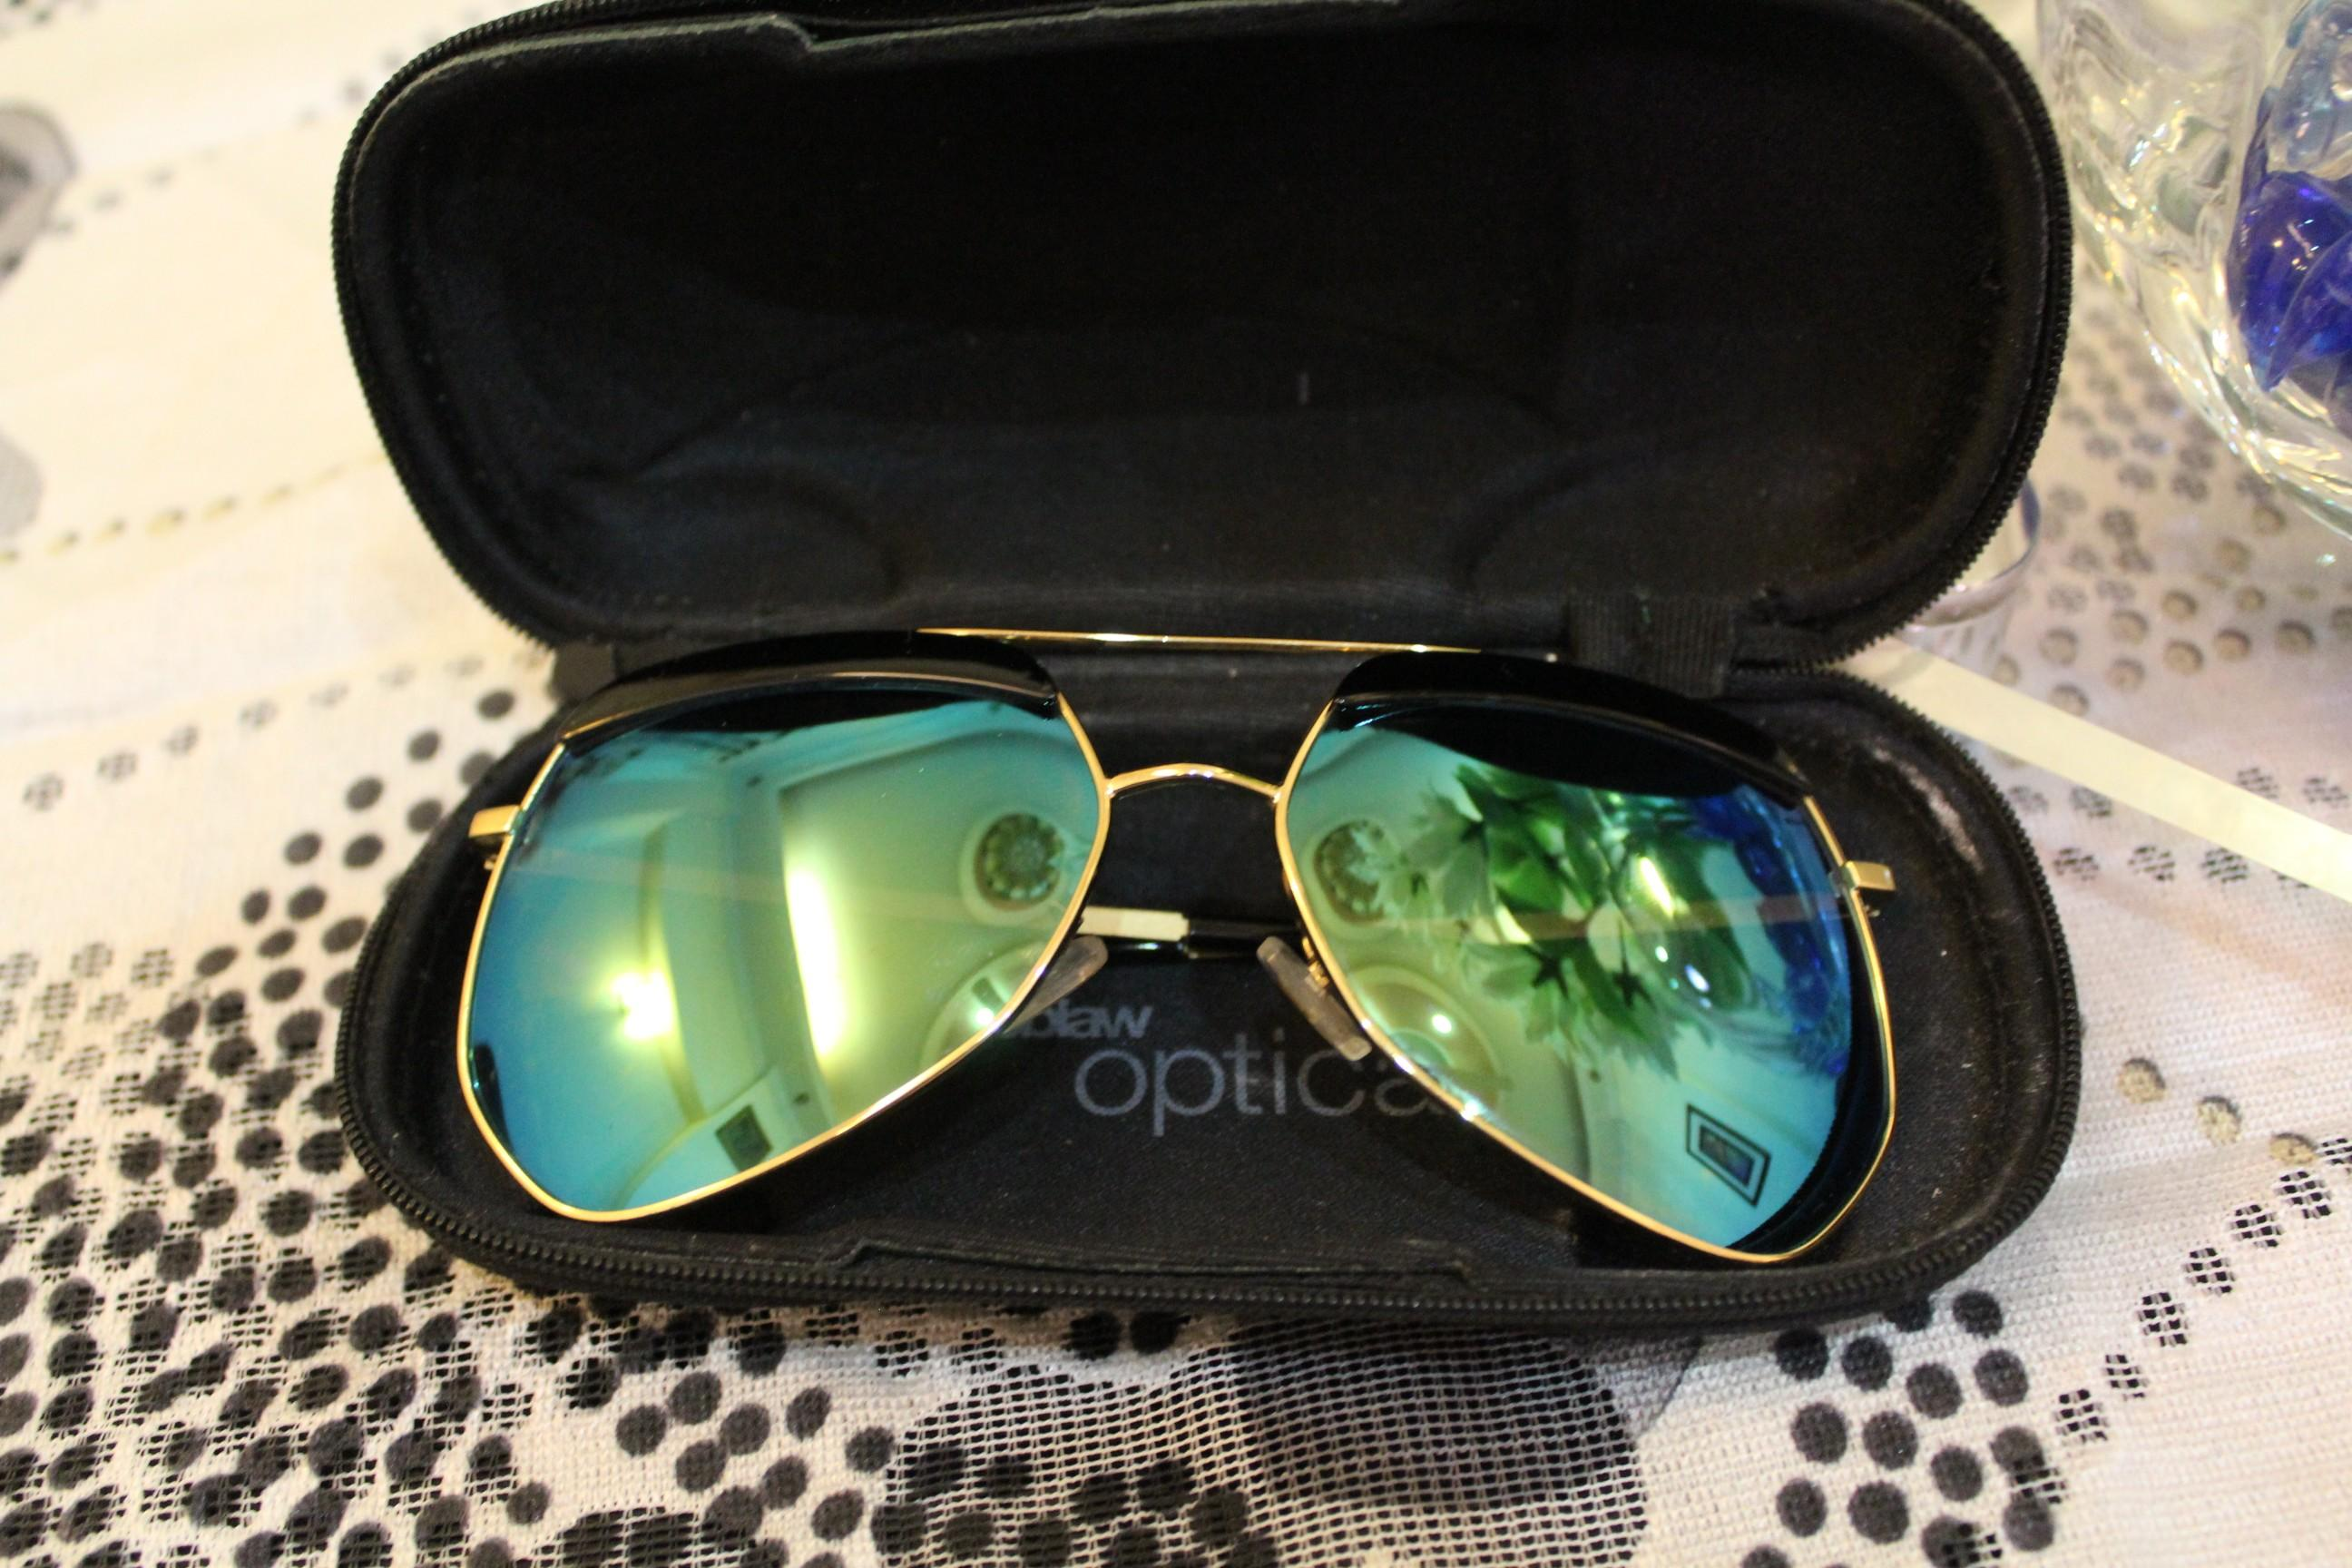 8a1360af71c Sunglasses 2 - Buy Sunglasses 2 at Best Price in Pakistan